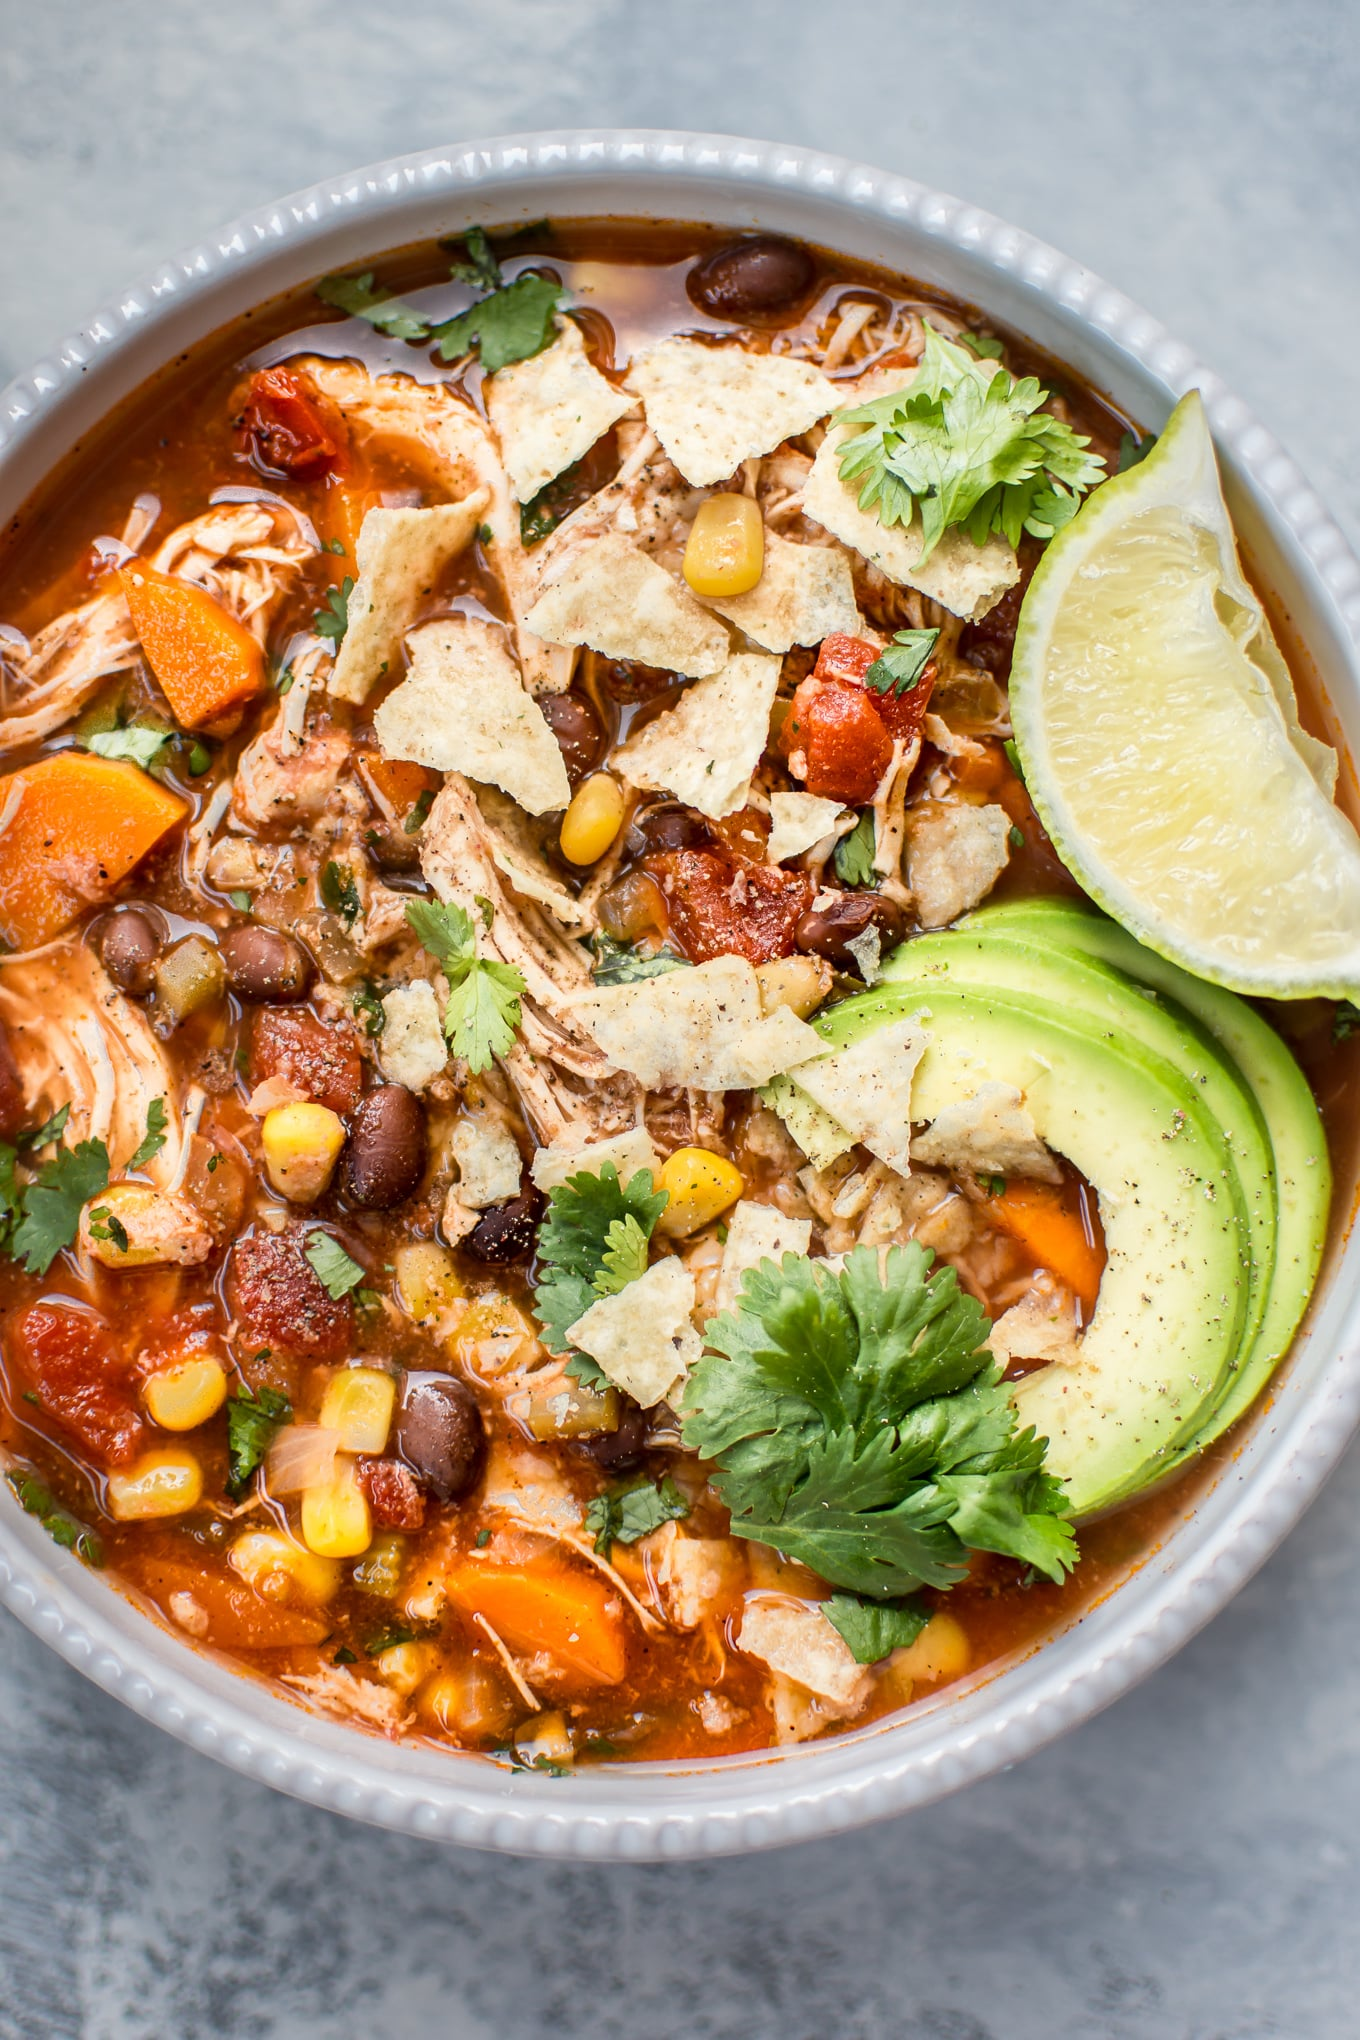 This Crockpot Mexican chicken soup is fresh, tangy, and comforting. Set it and forget it, and you'll come back home to a wonderful healthy homemade soup!